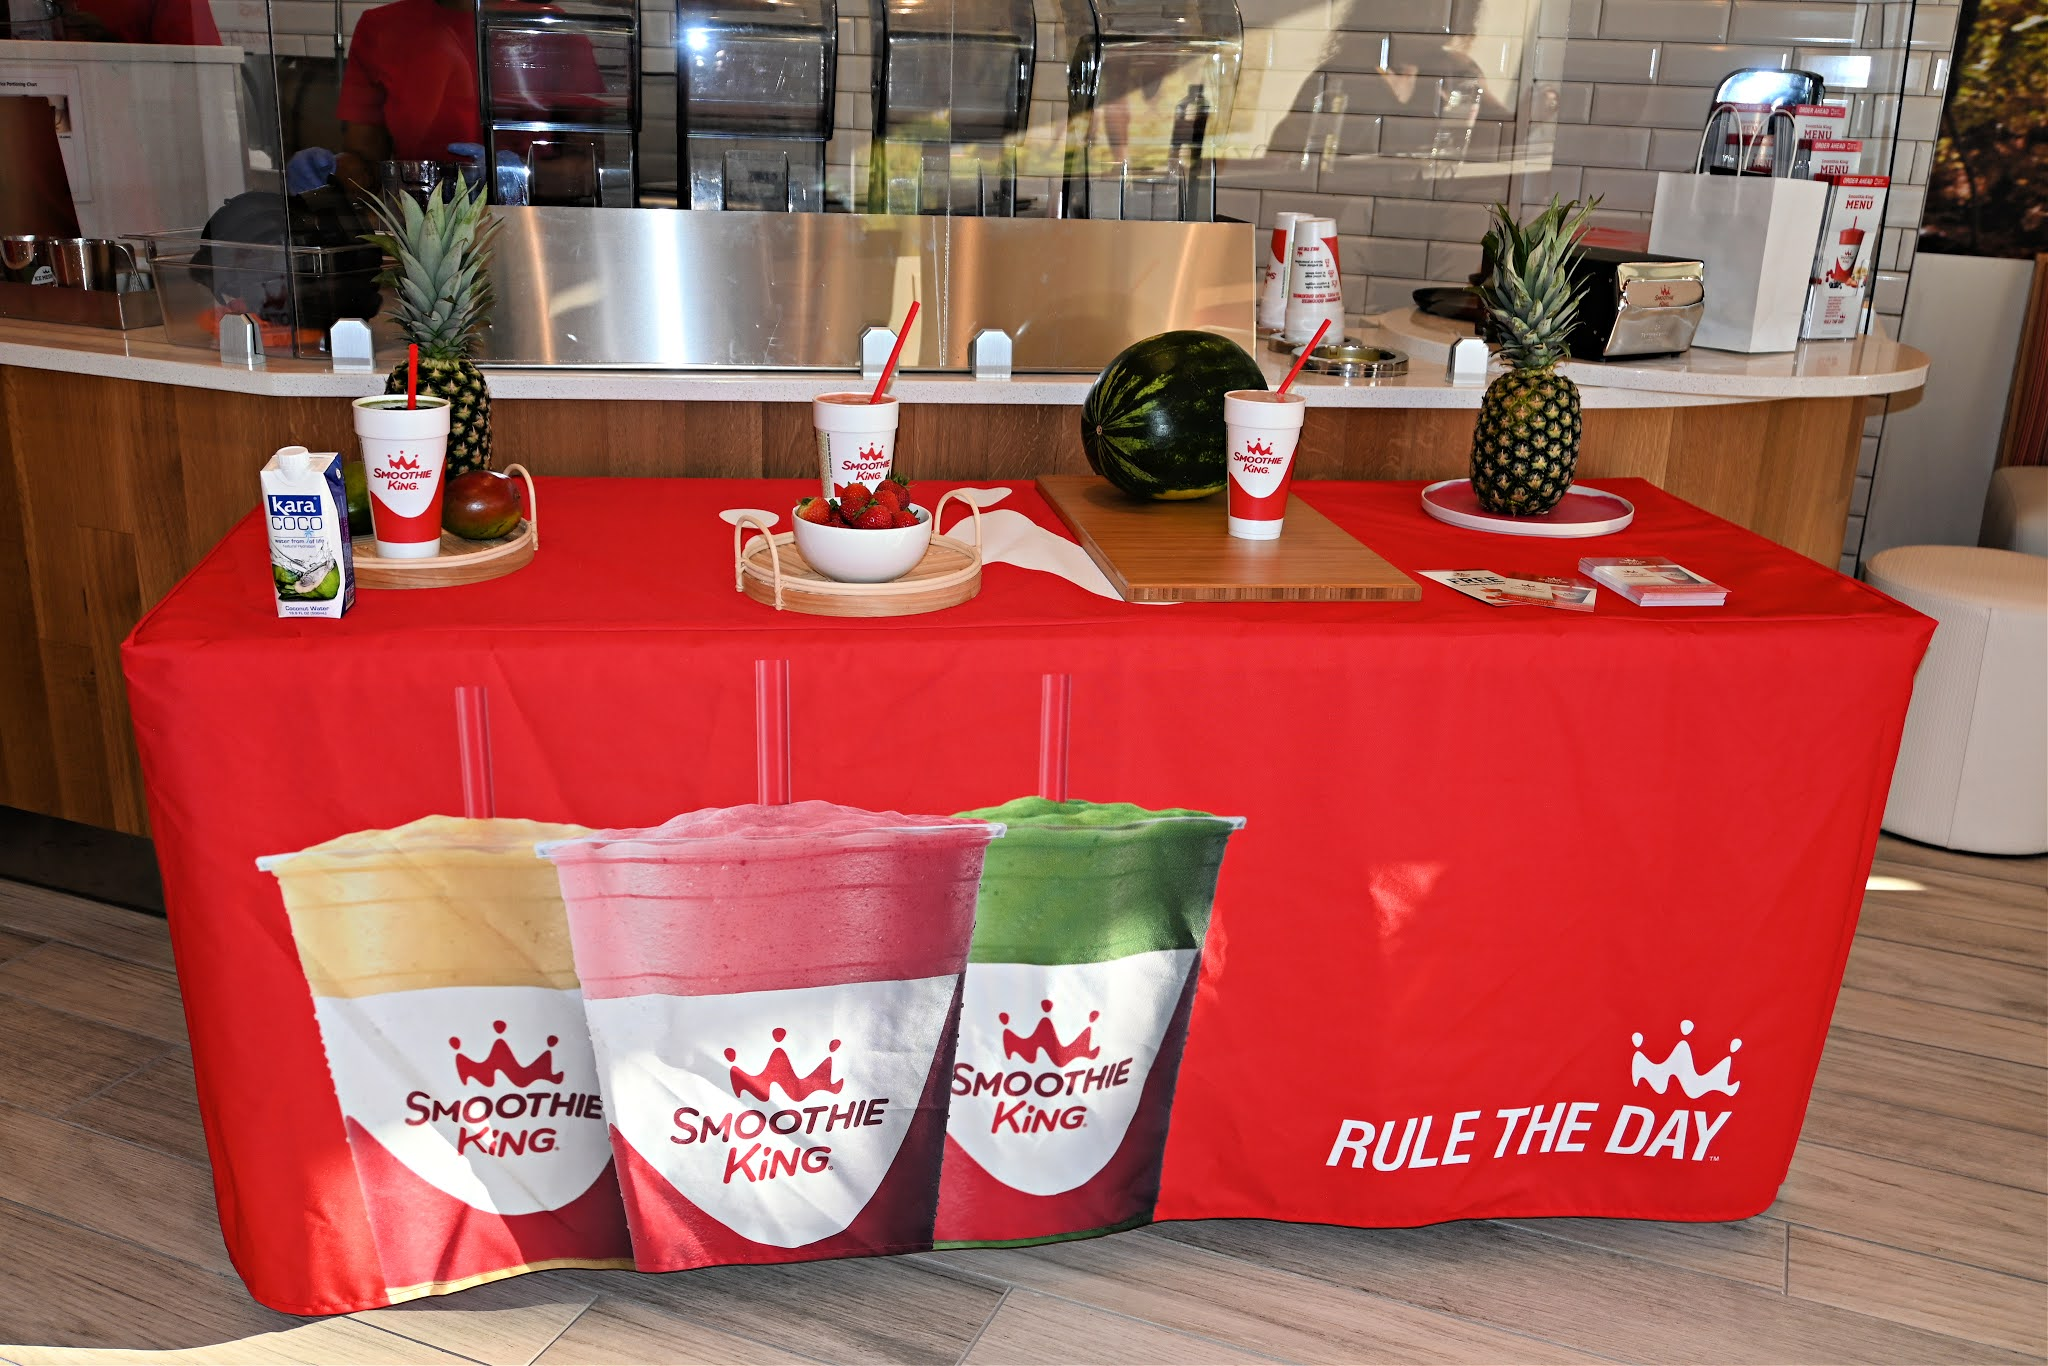 Trying out the New Clean Blend Smoothies at Smoothie King